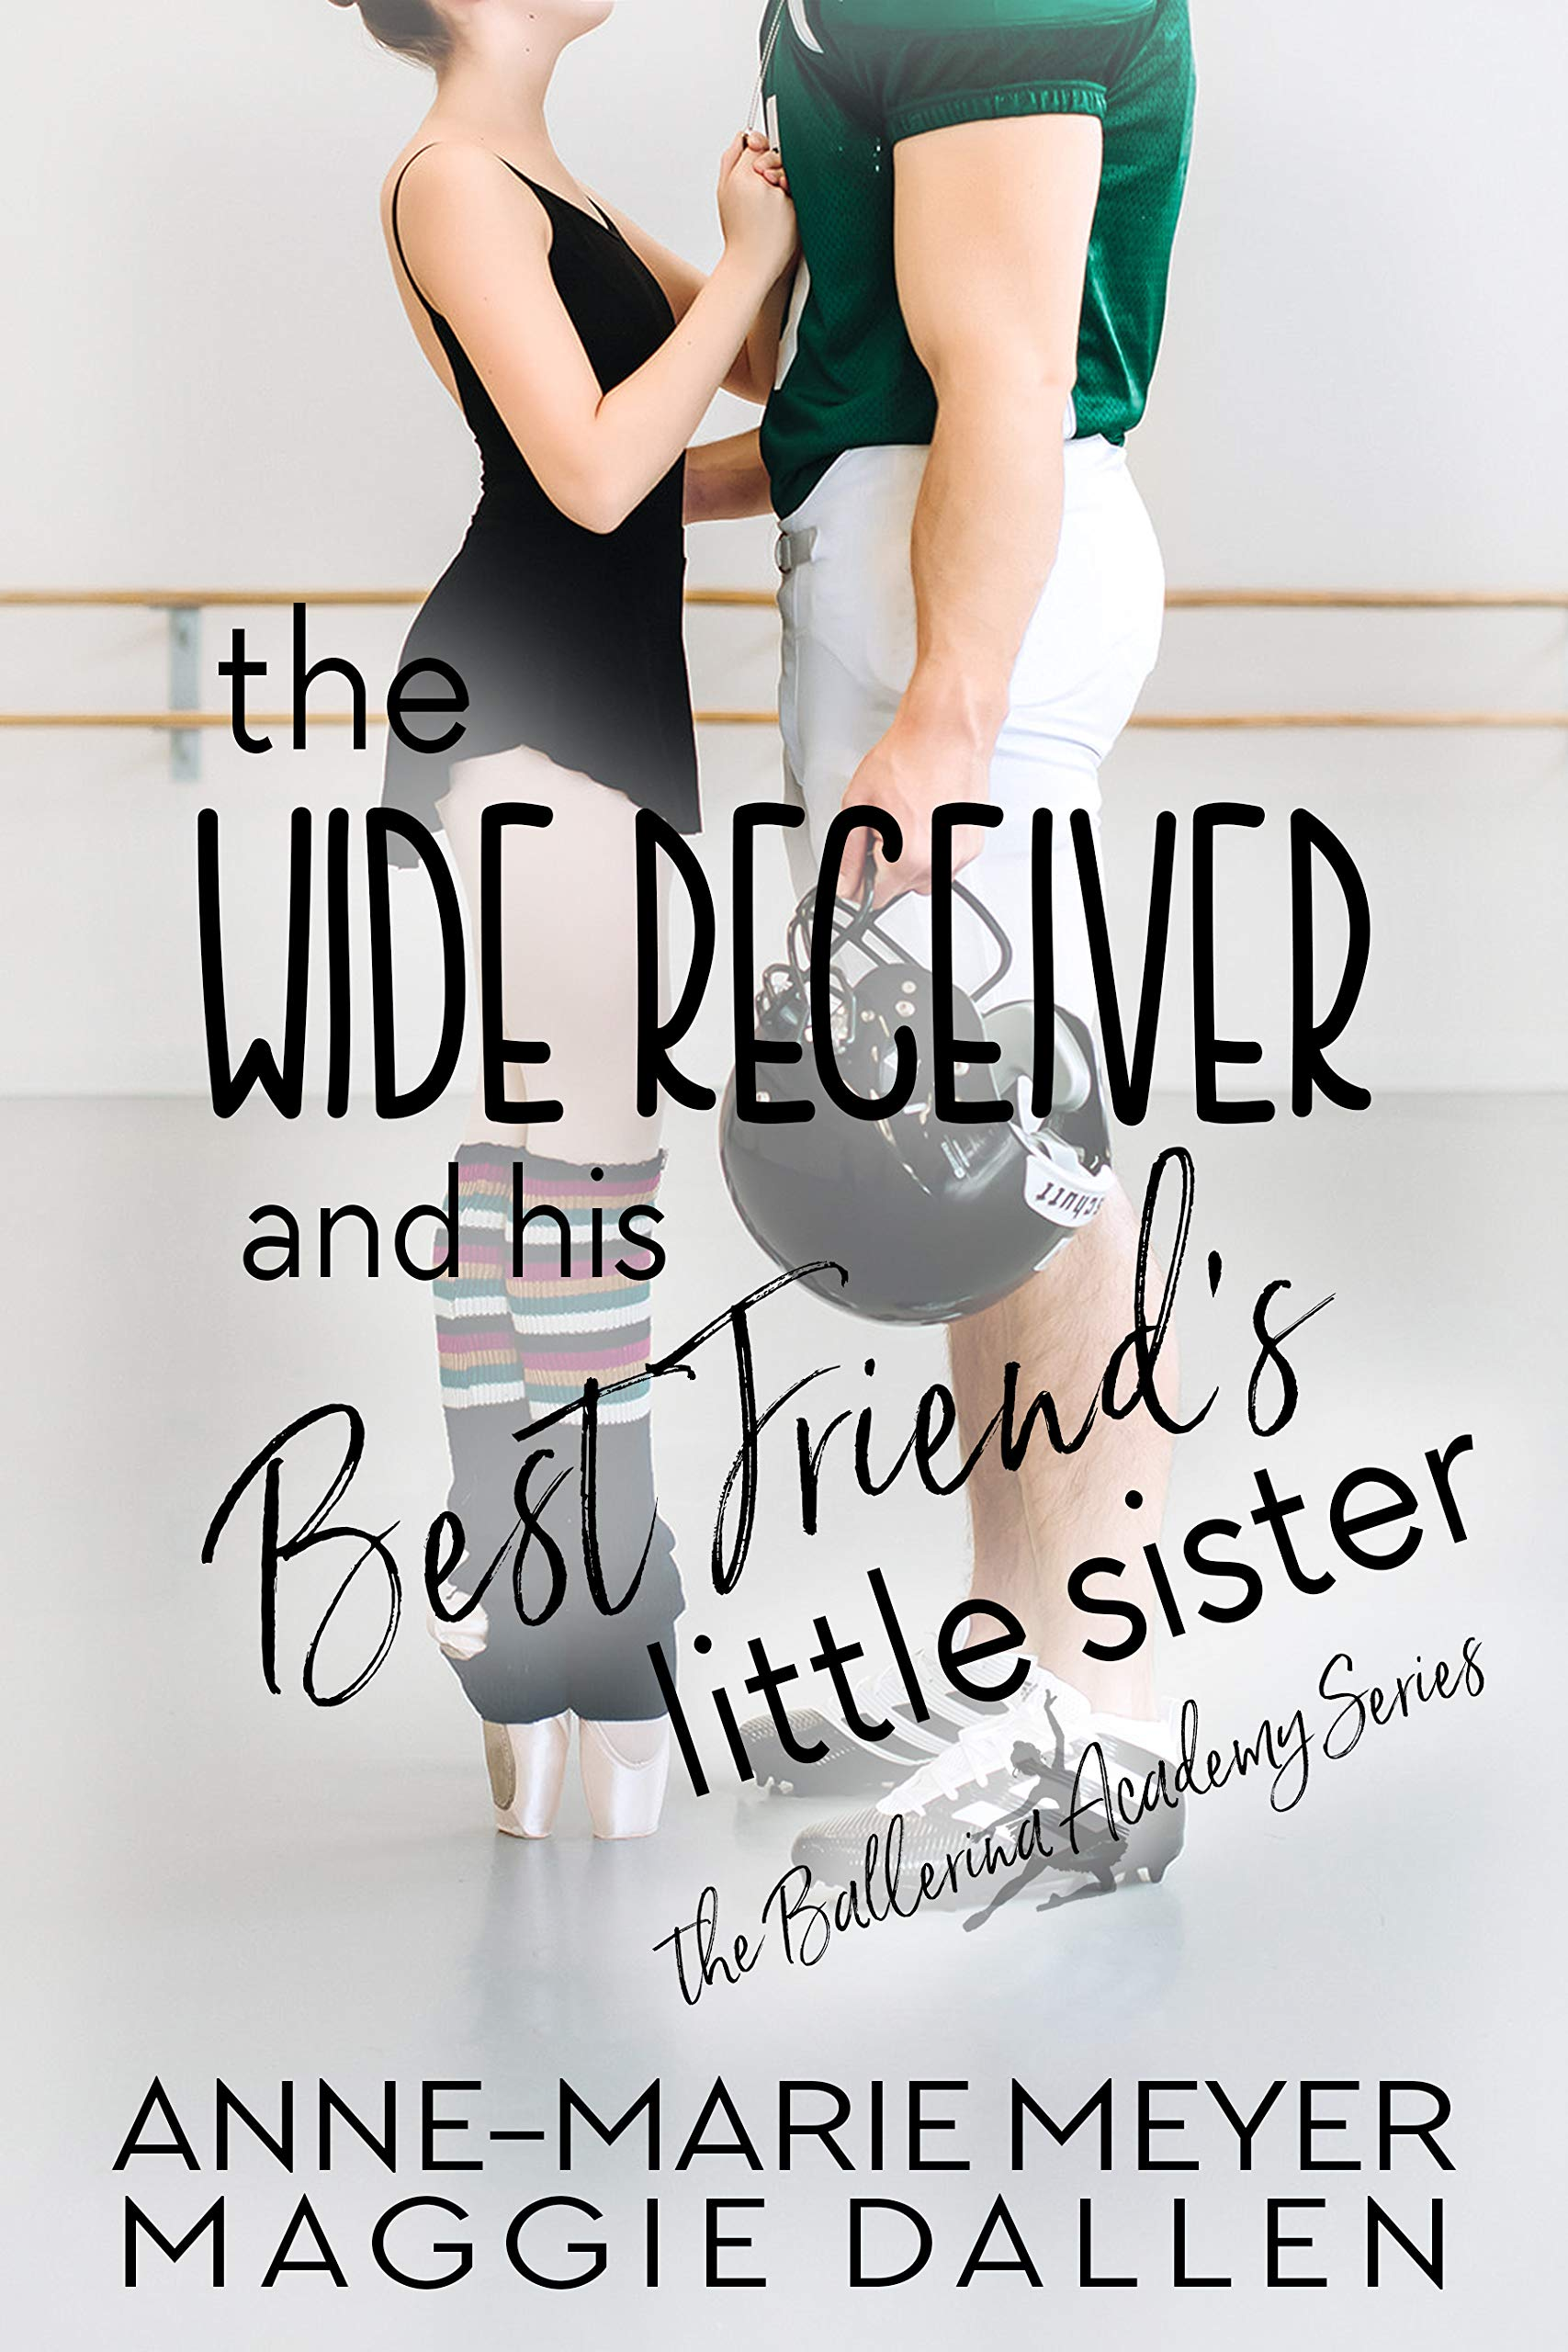 The Wide Receiver and his Best Friend's Little Sister (The Ballerina Academy #3)